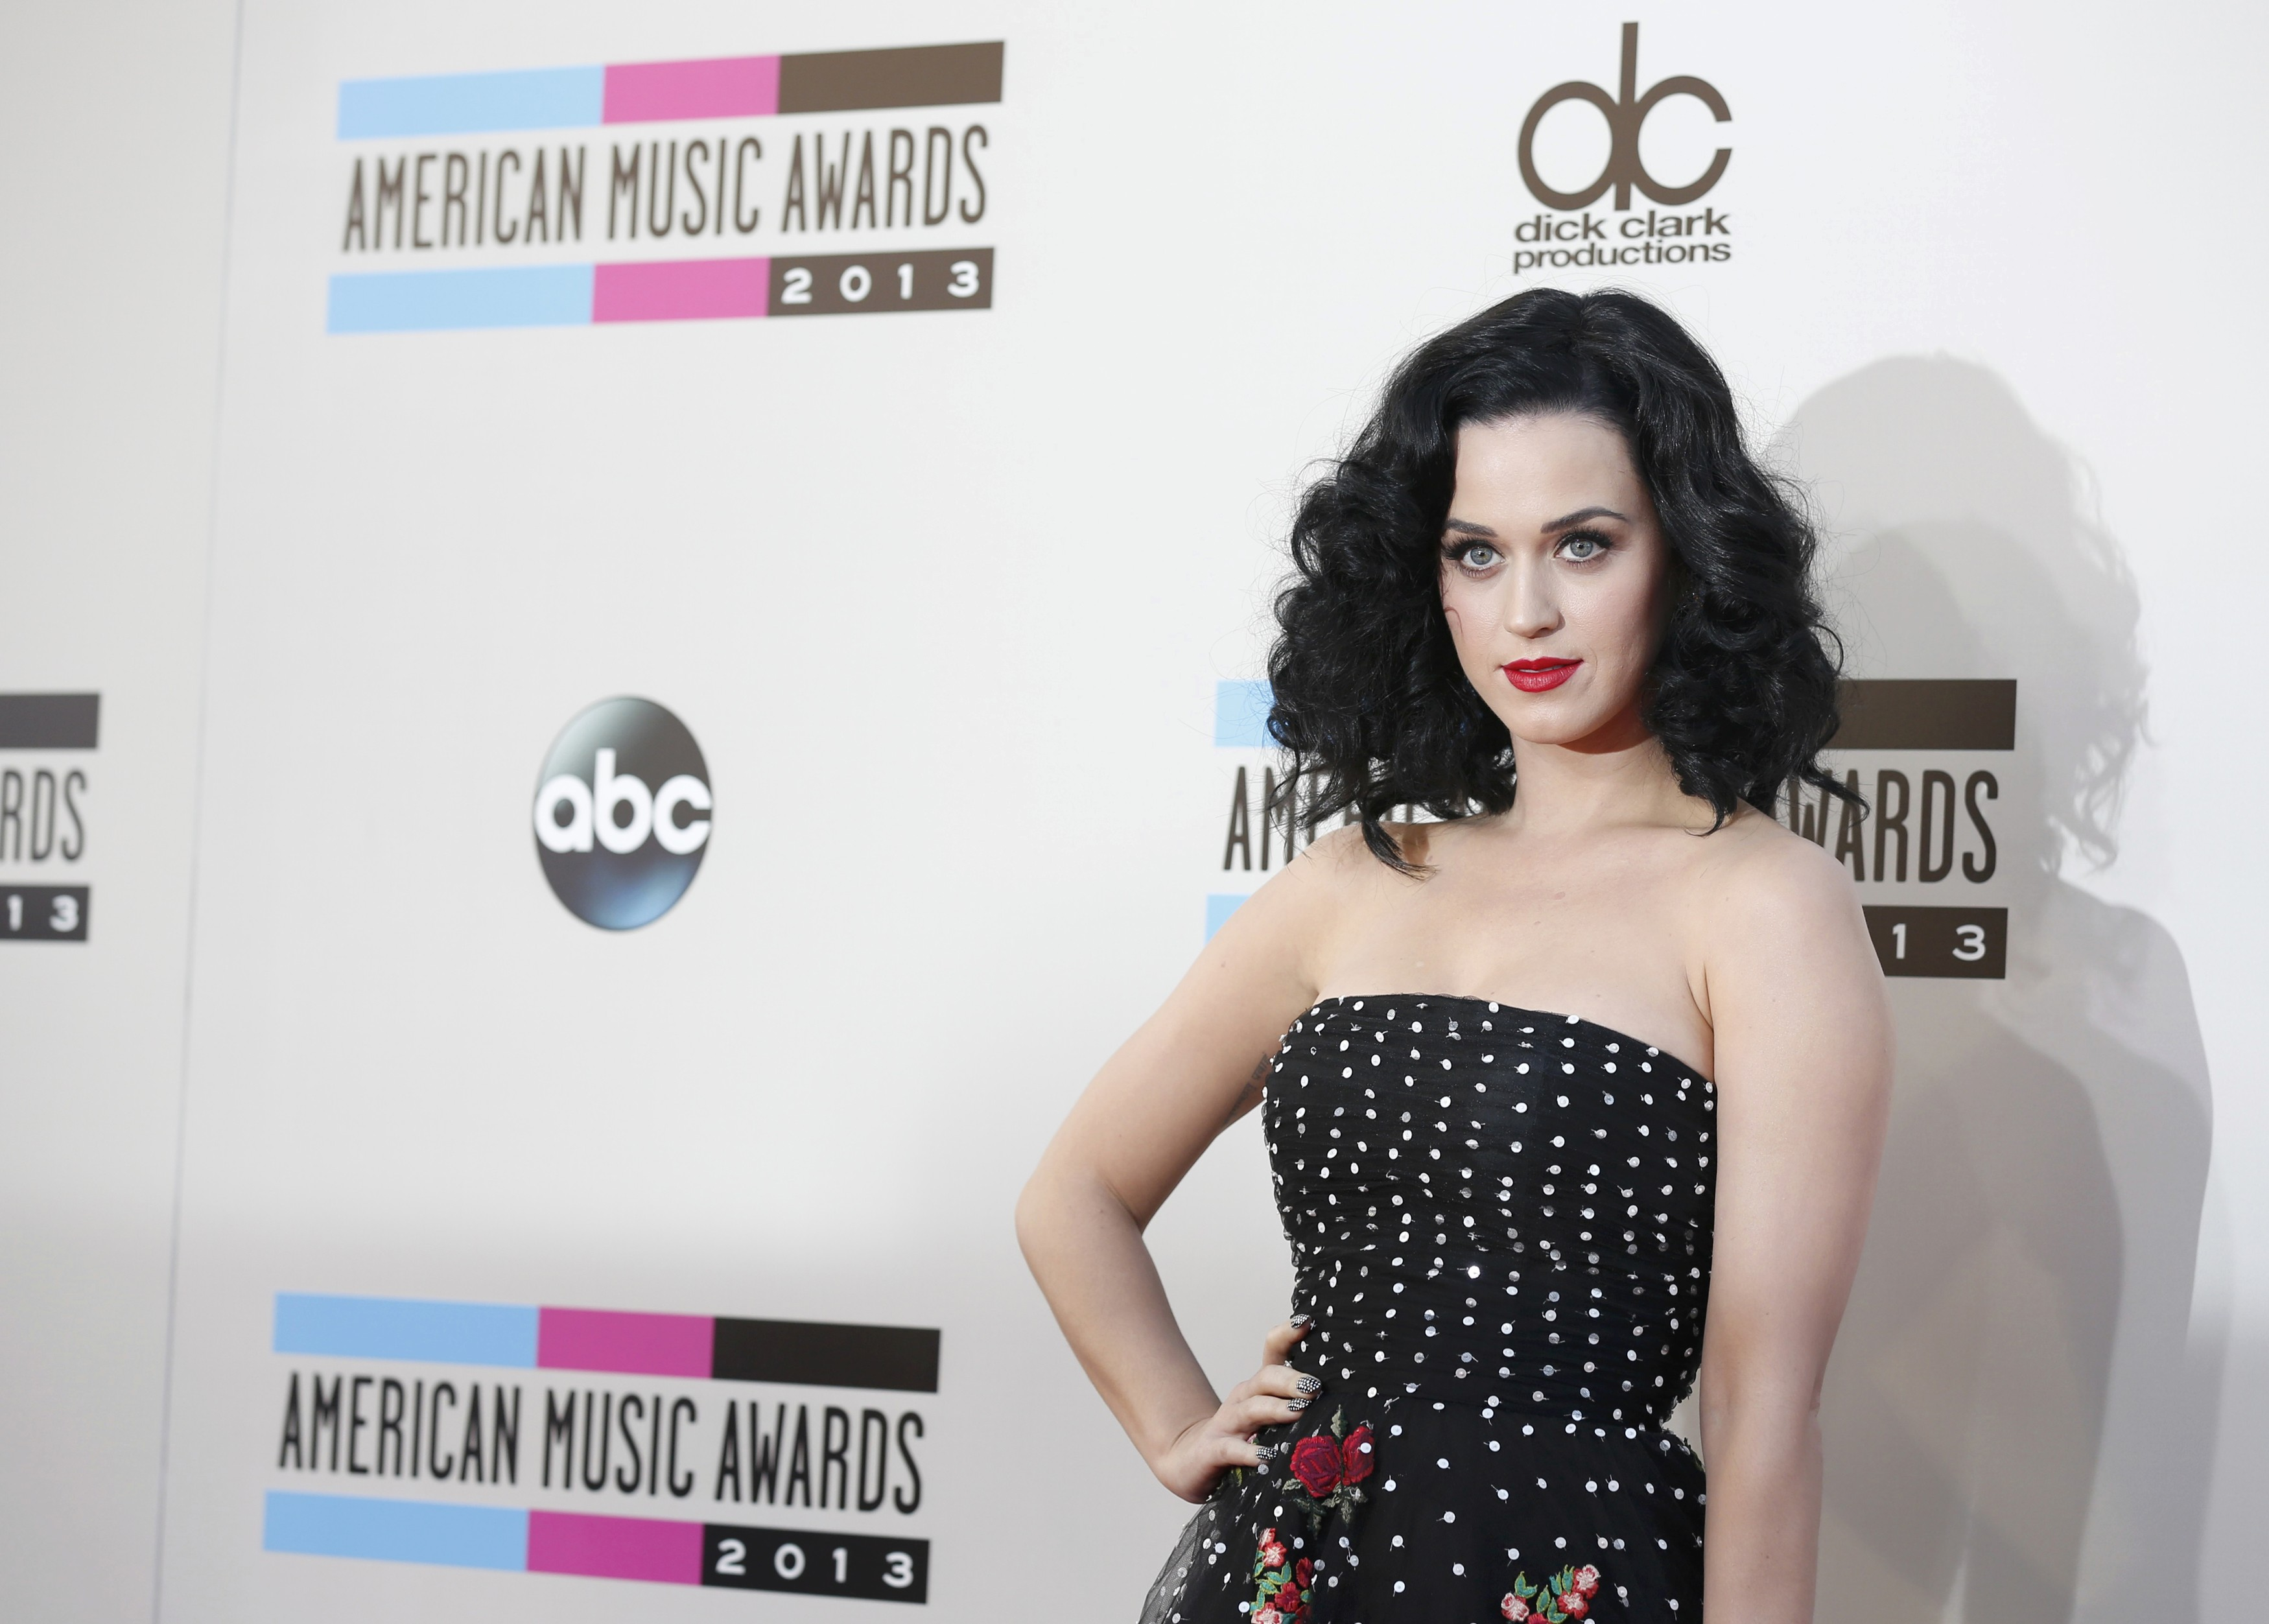 Katy Perry no American Music Awards em Los Angeles, nos Estados Unidos